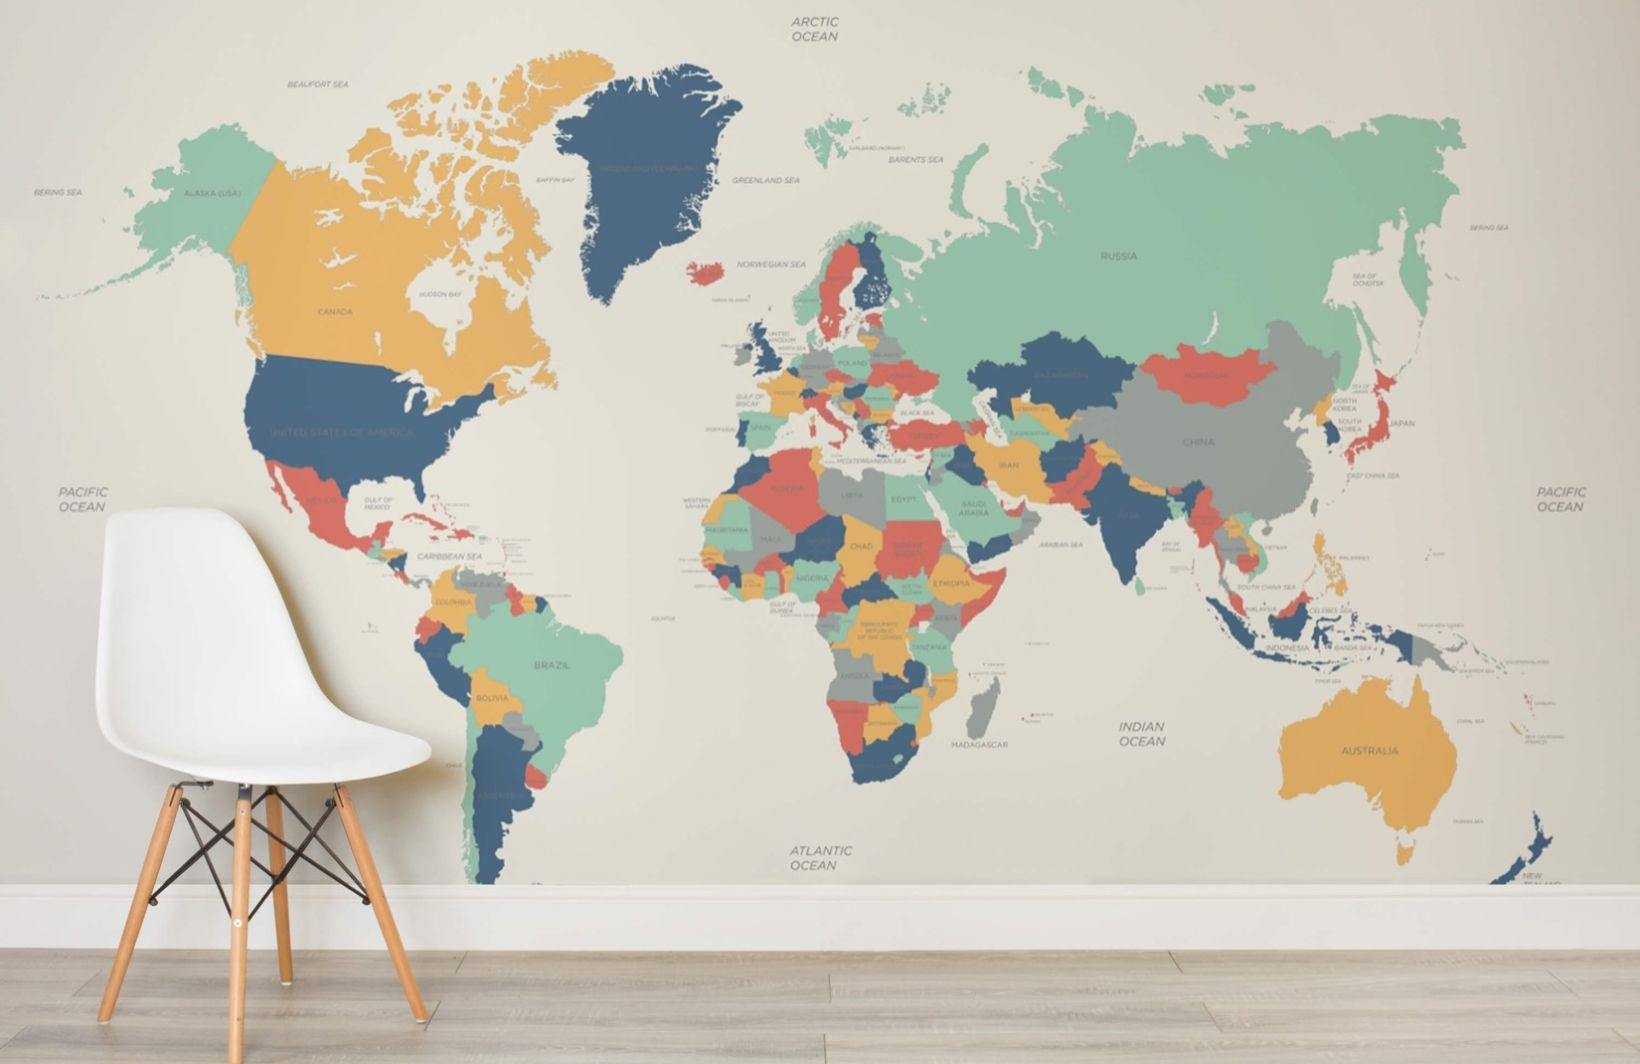 Globetrotter kids map mural muralswallpaper kids office globetrotter kids map mural custom made to suit your wall size by the uks for murals custom design service and express delivery available gumiabroncs Gallery